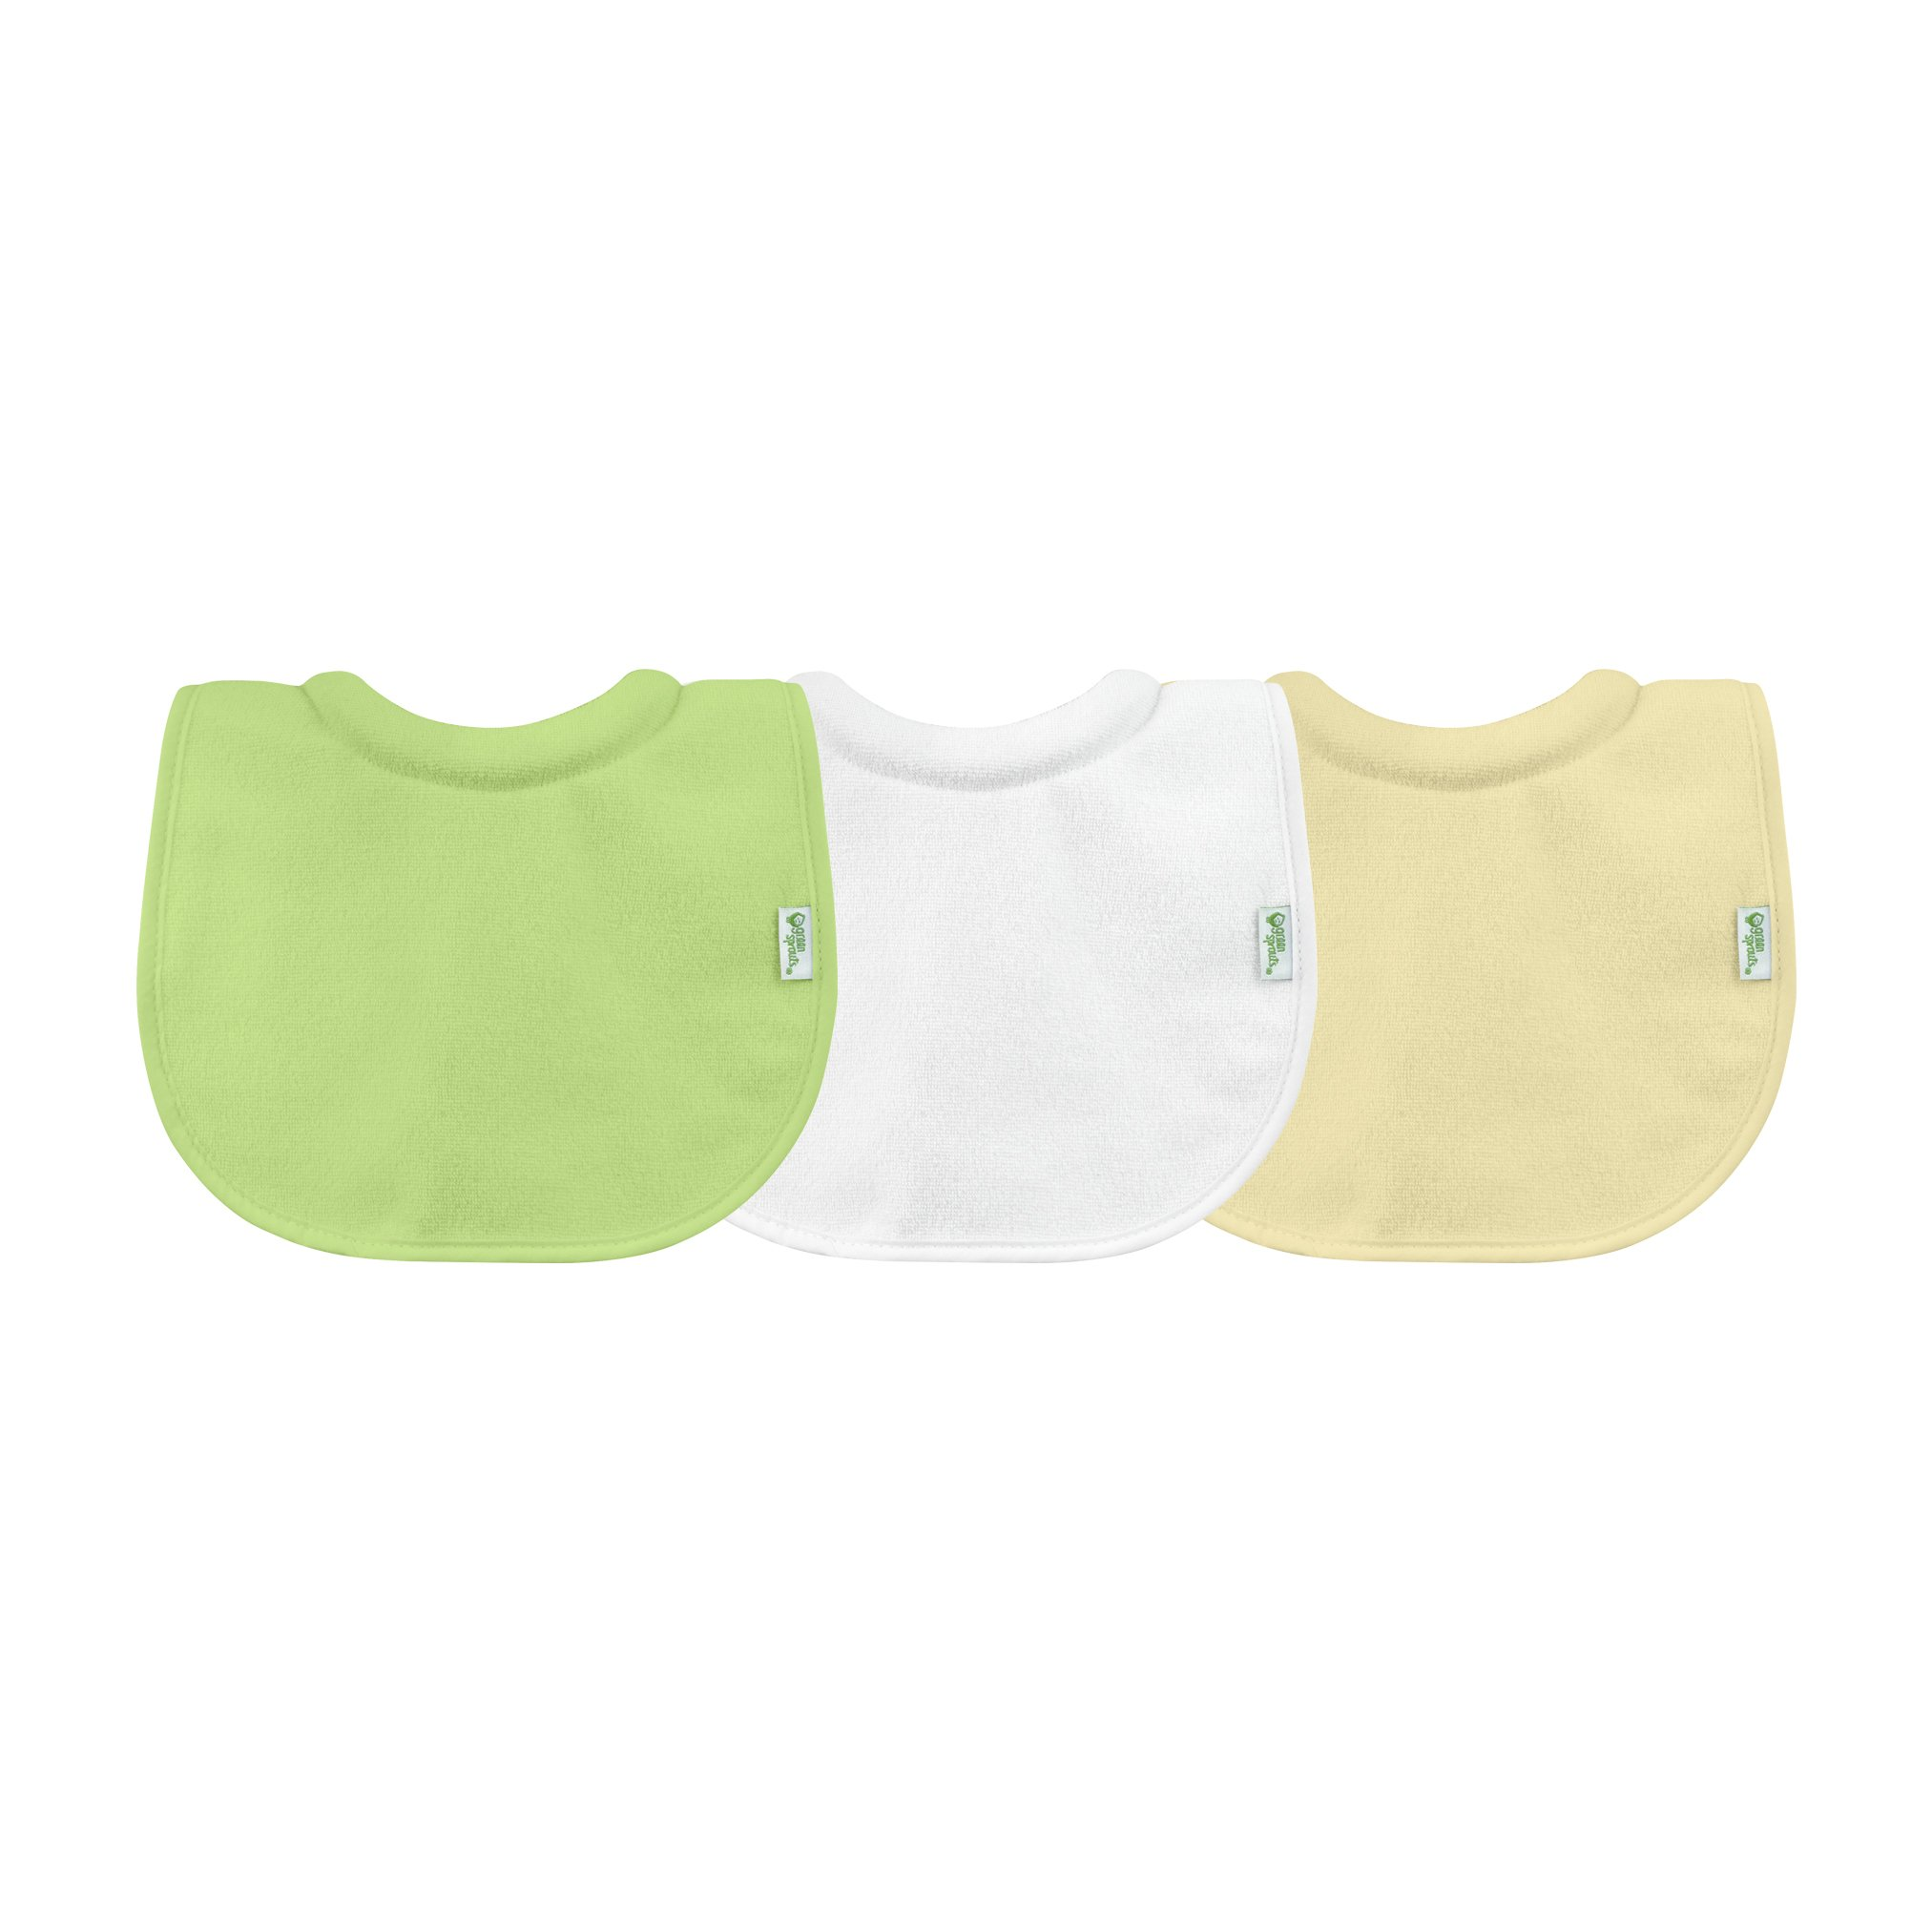 green sprouts Stay-dry Milk Catcher Bib, Green Set (3 Pack)